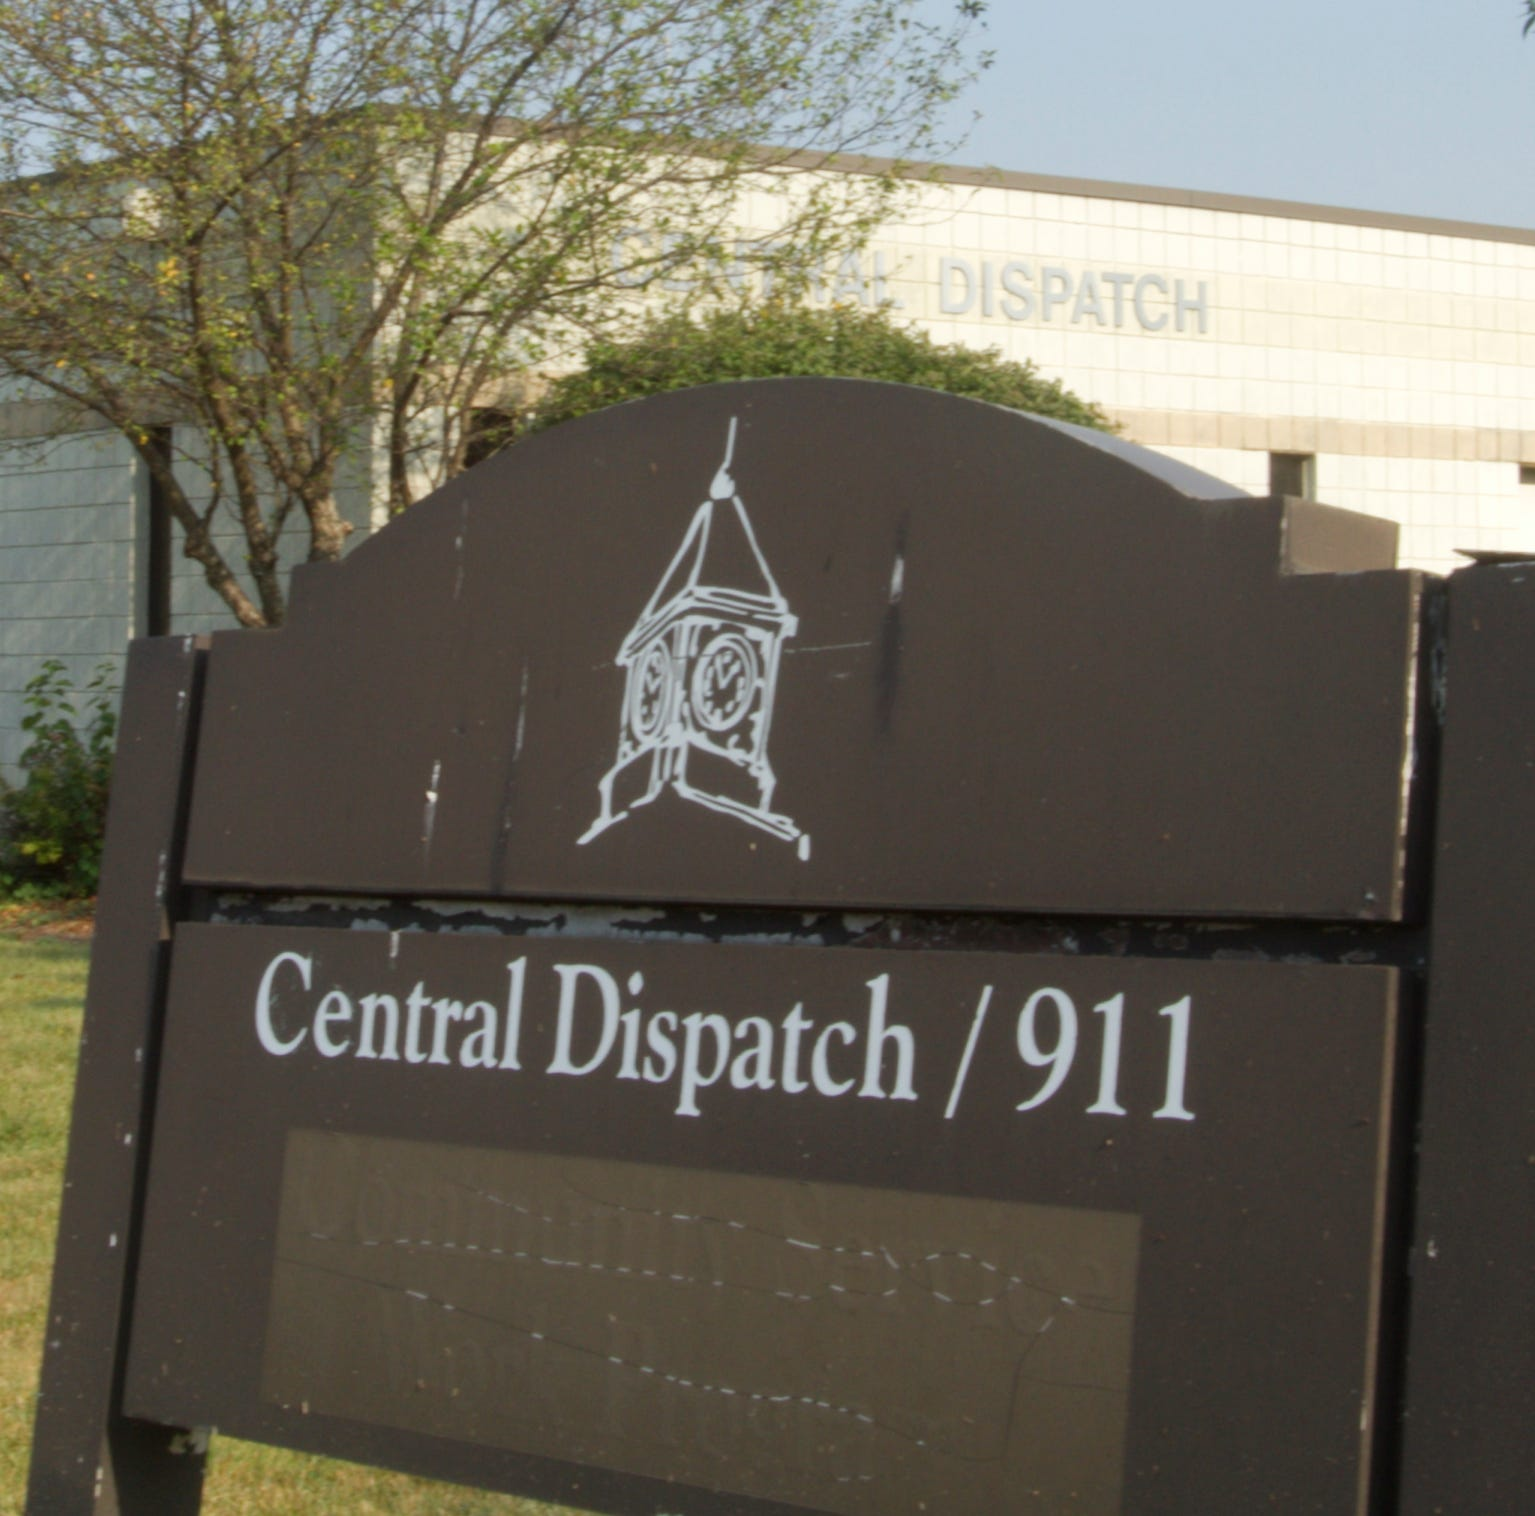 Livingston County Central Dispatch first in Michigan to earn rare triple accreditation